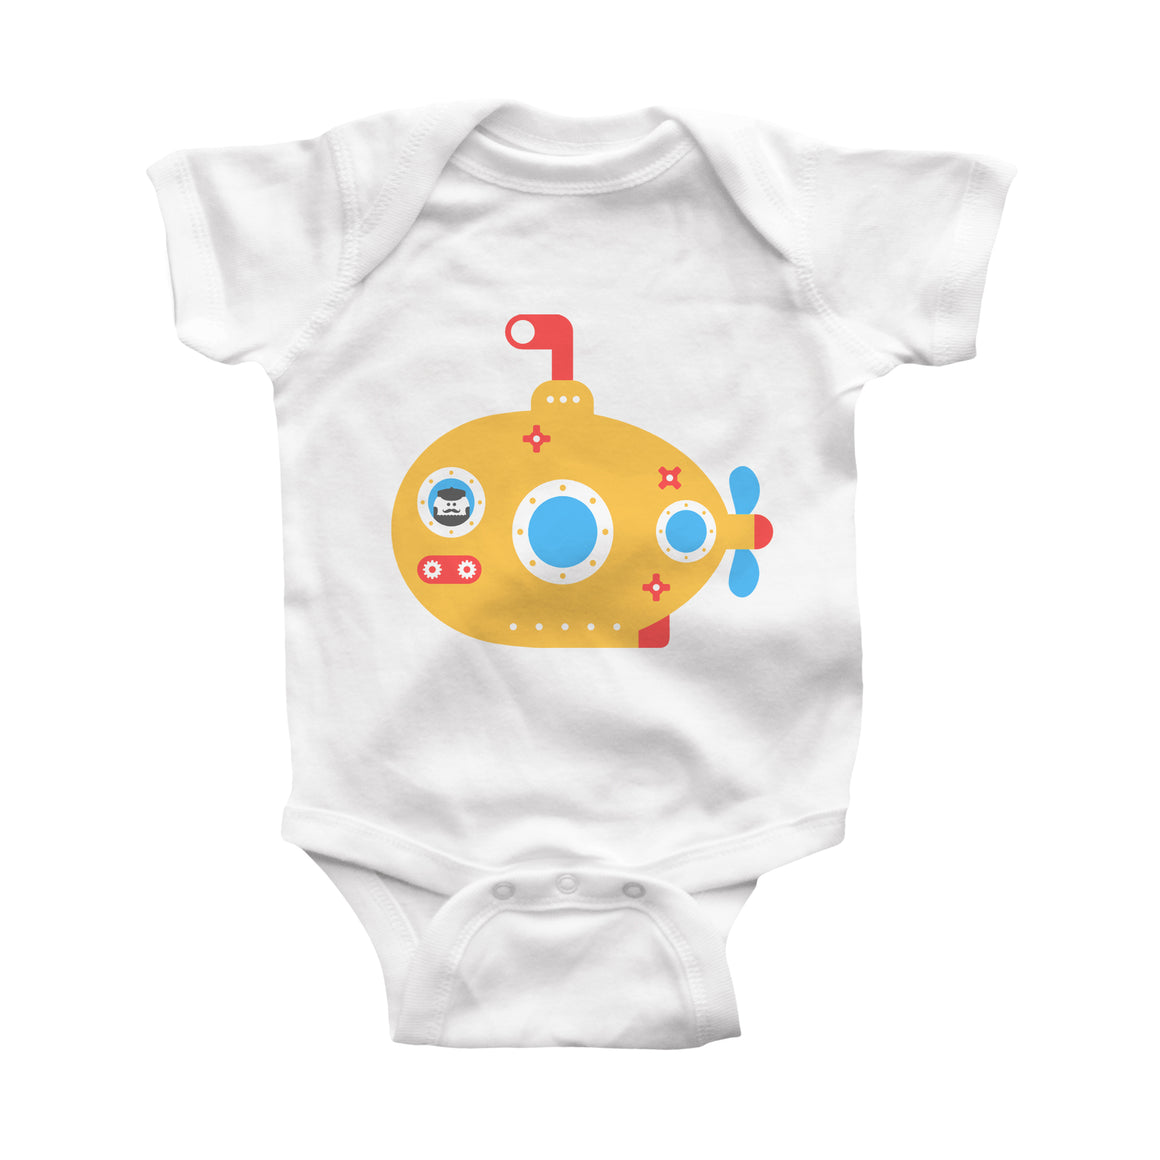 sub infant bodysuit